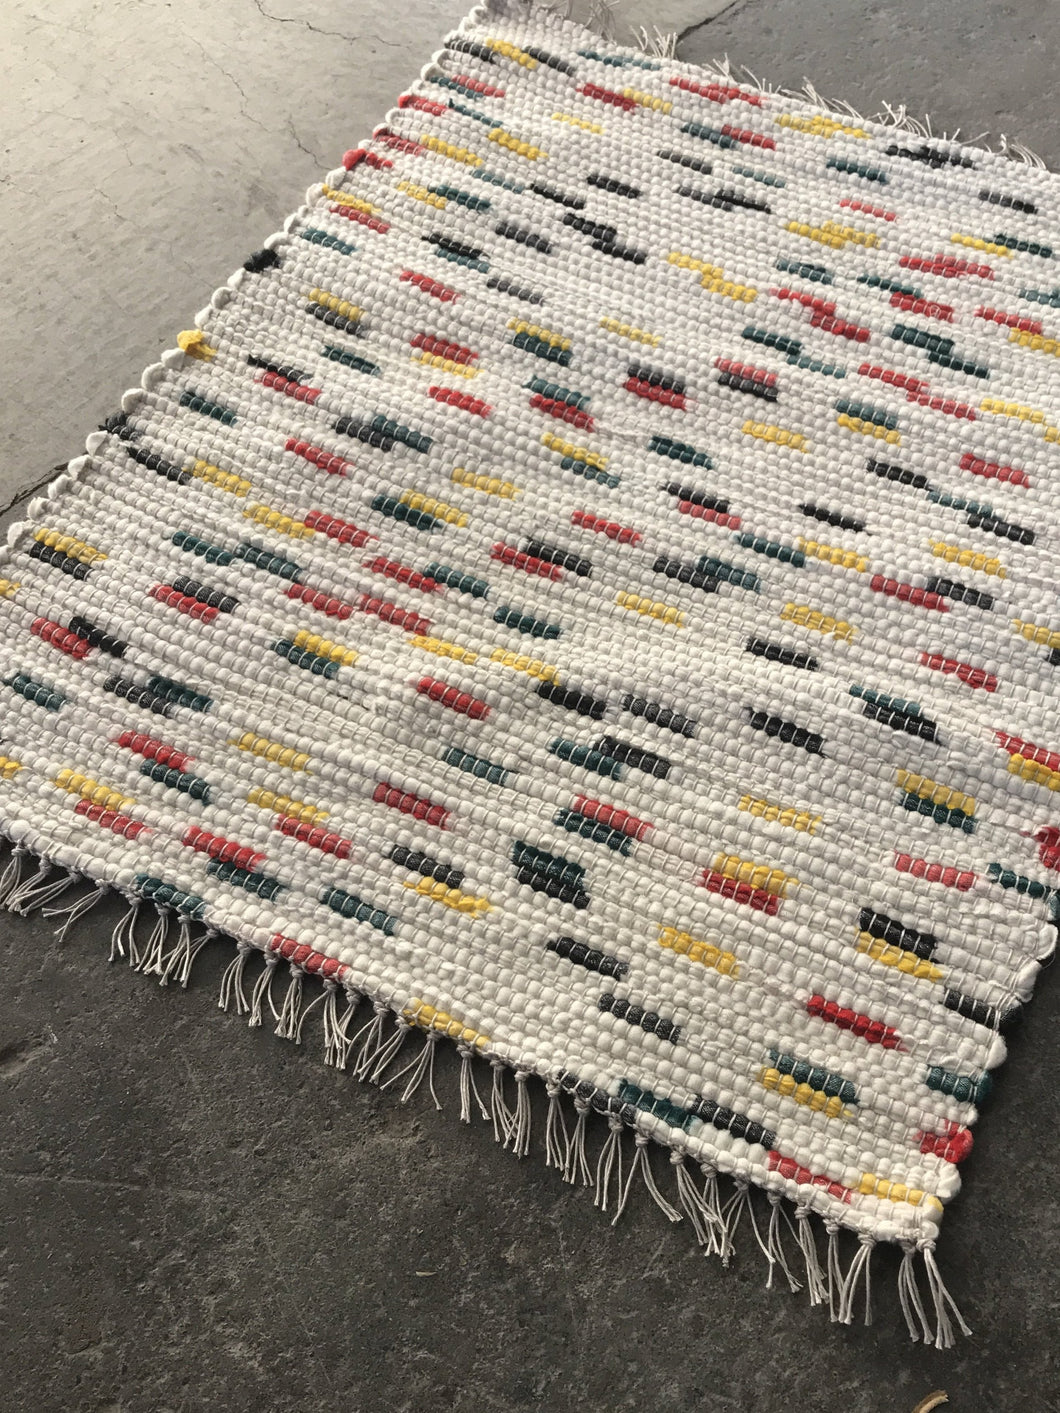 Pendleton Wool Mill Selvage Handwoven Rug - White with Dots of Color